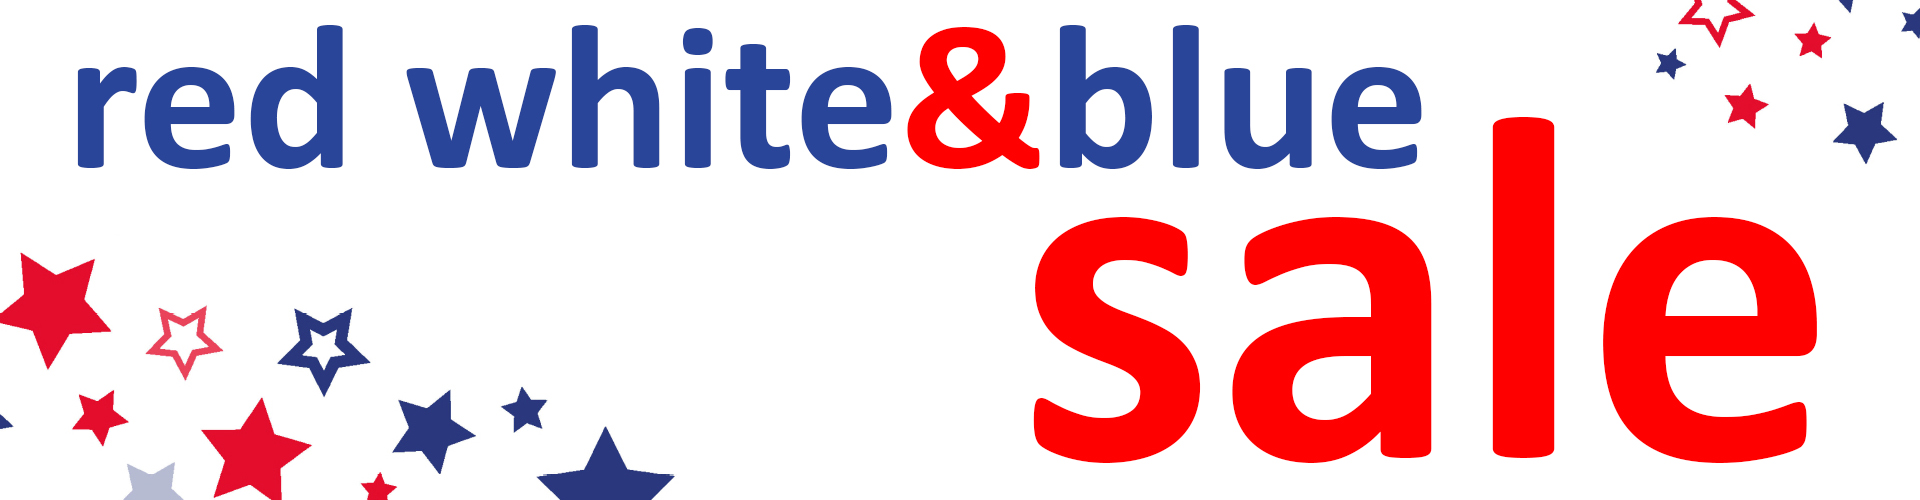 Red, White & Blue Sale: Going on Right Now!